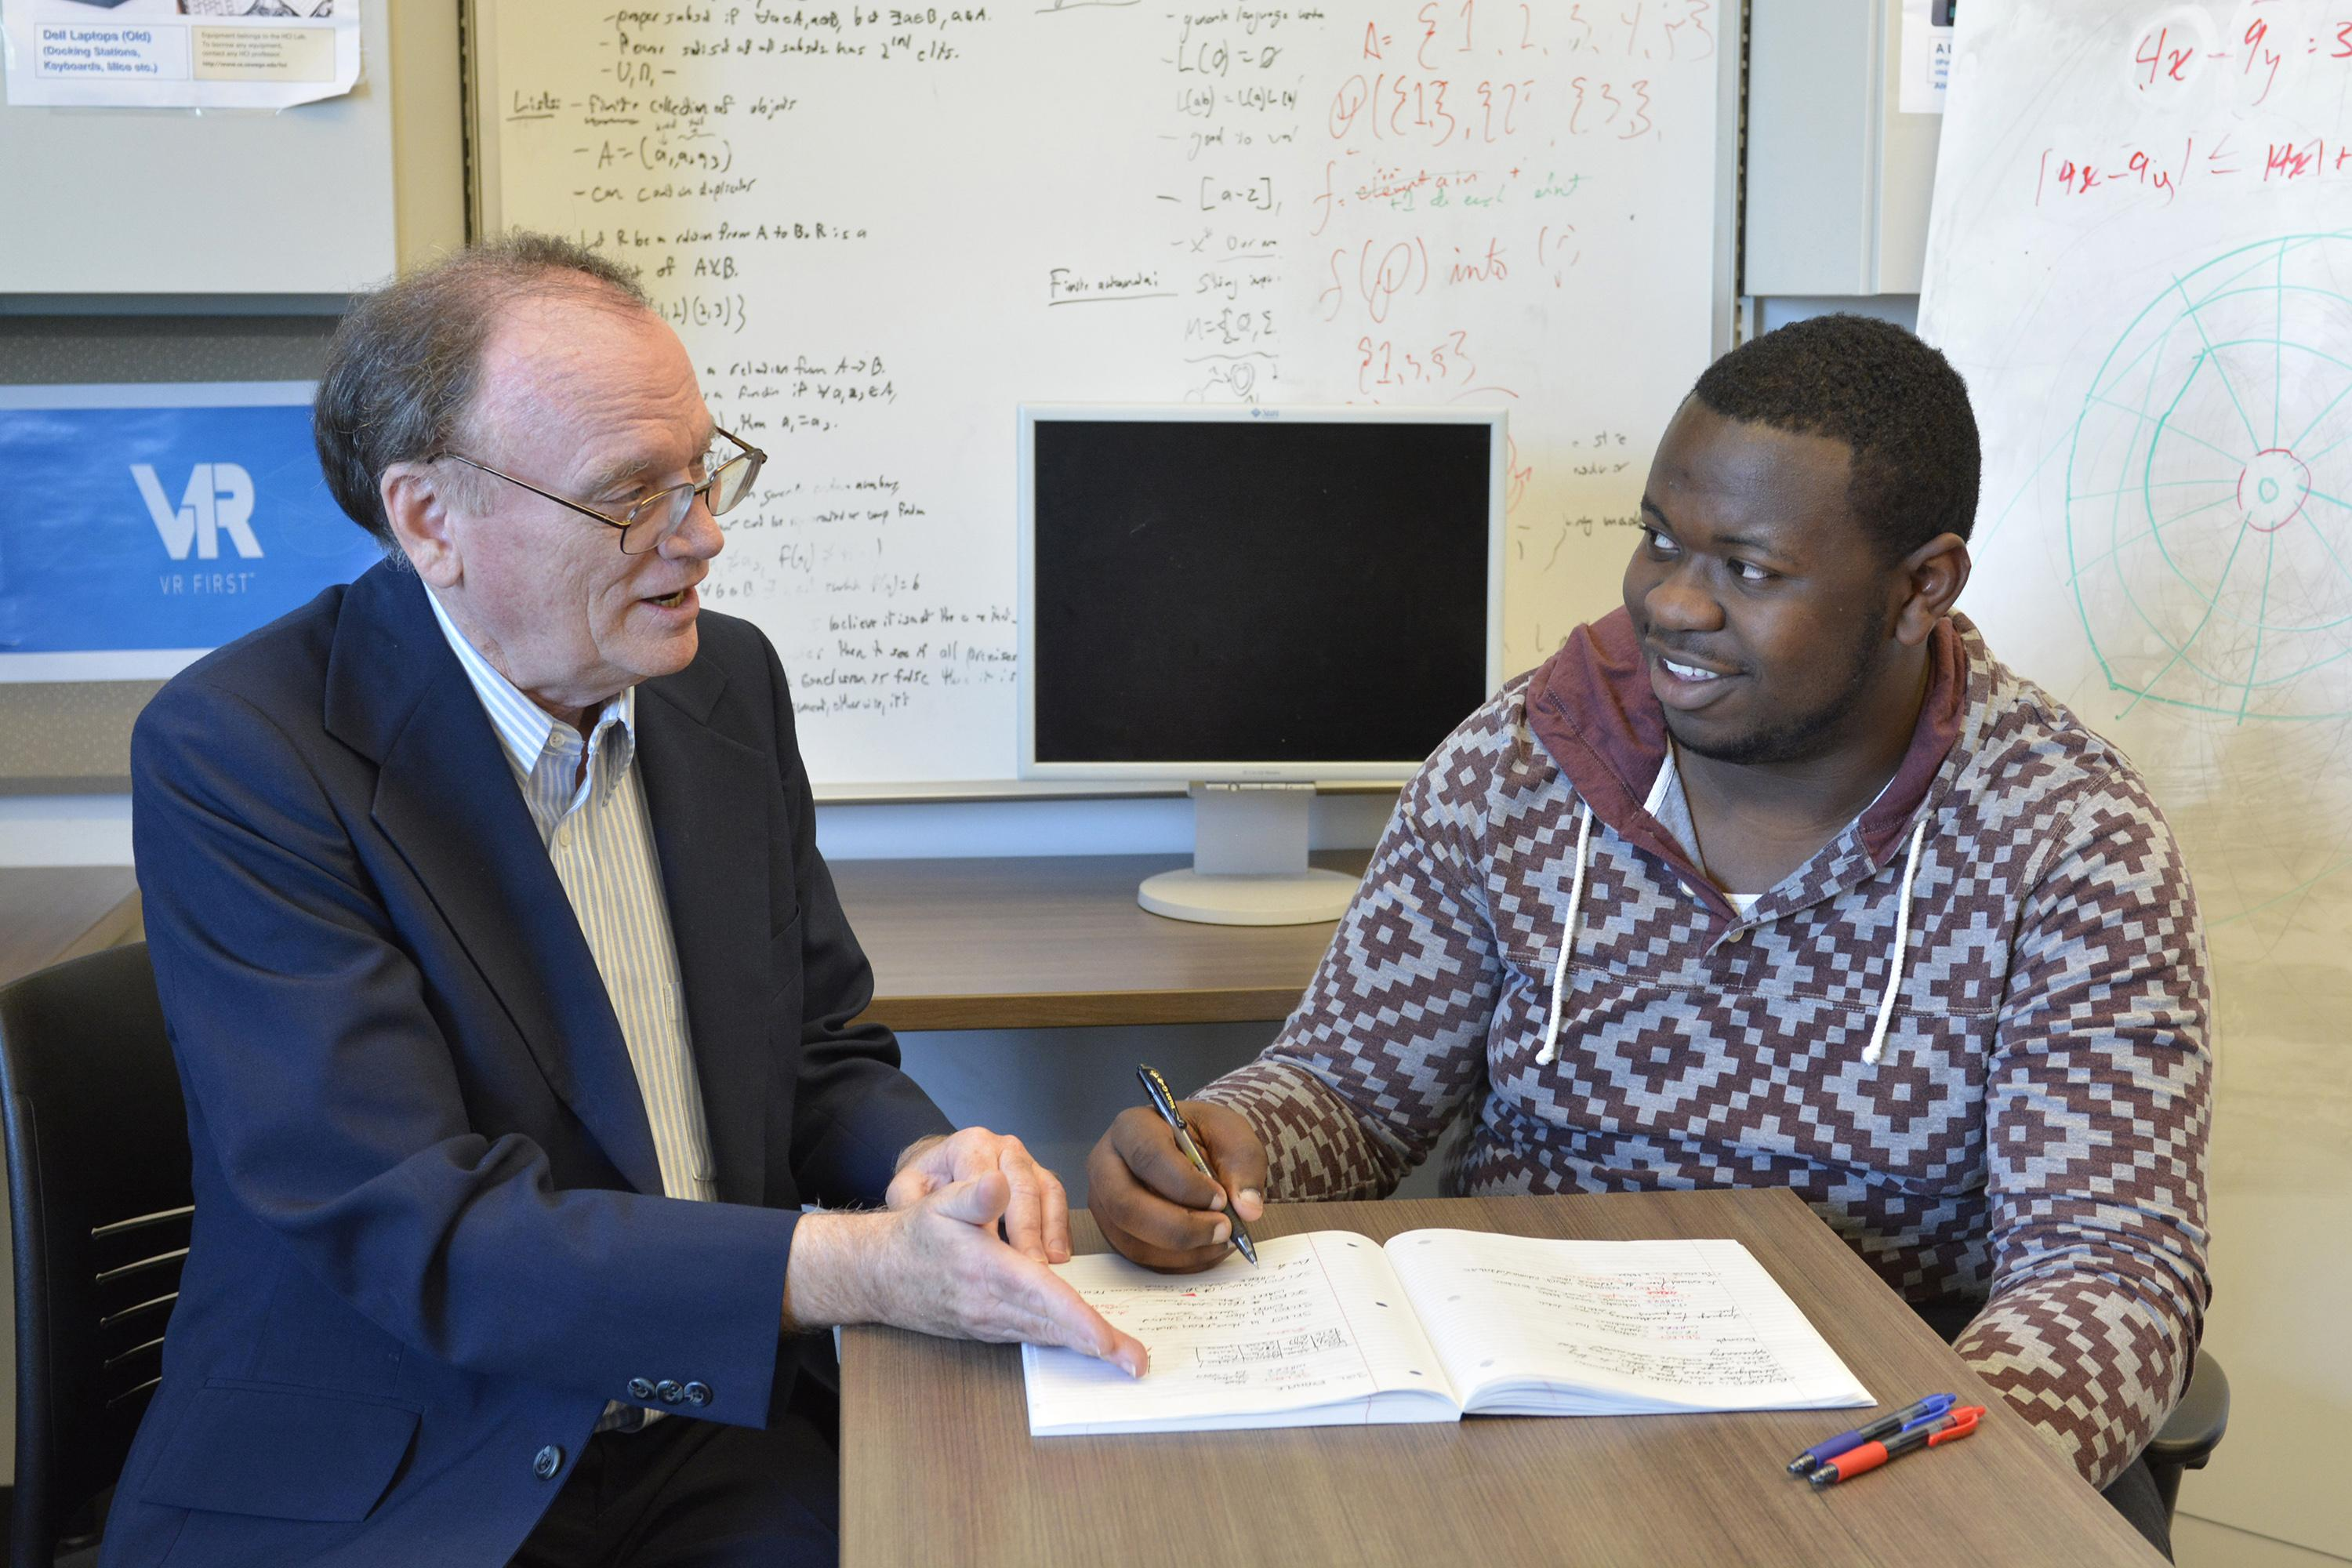 Faculty member David Vampola speaks with student Kingsley Ibezim